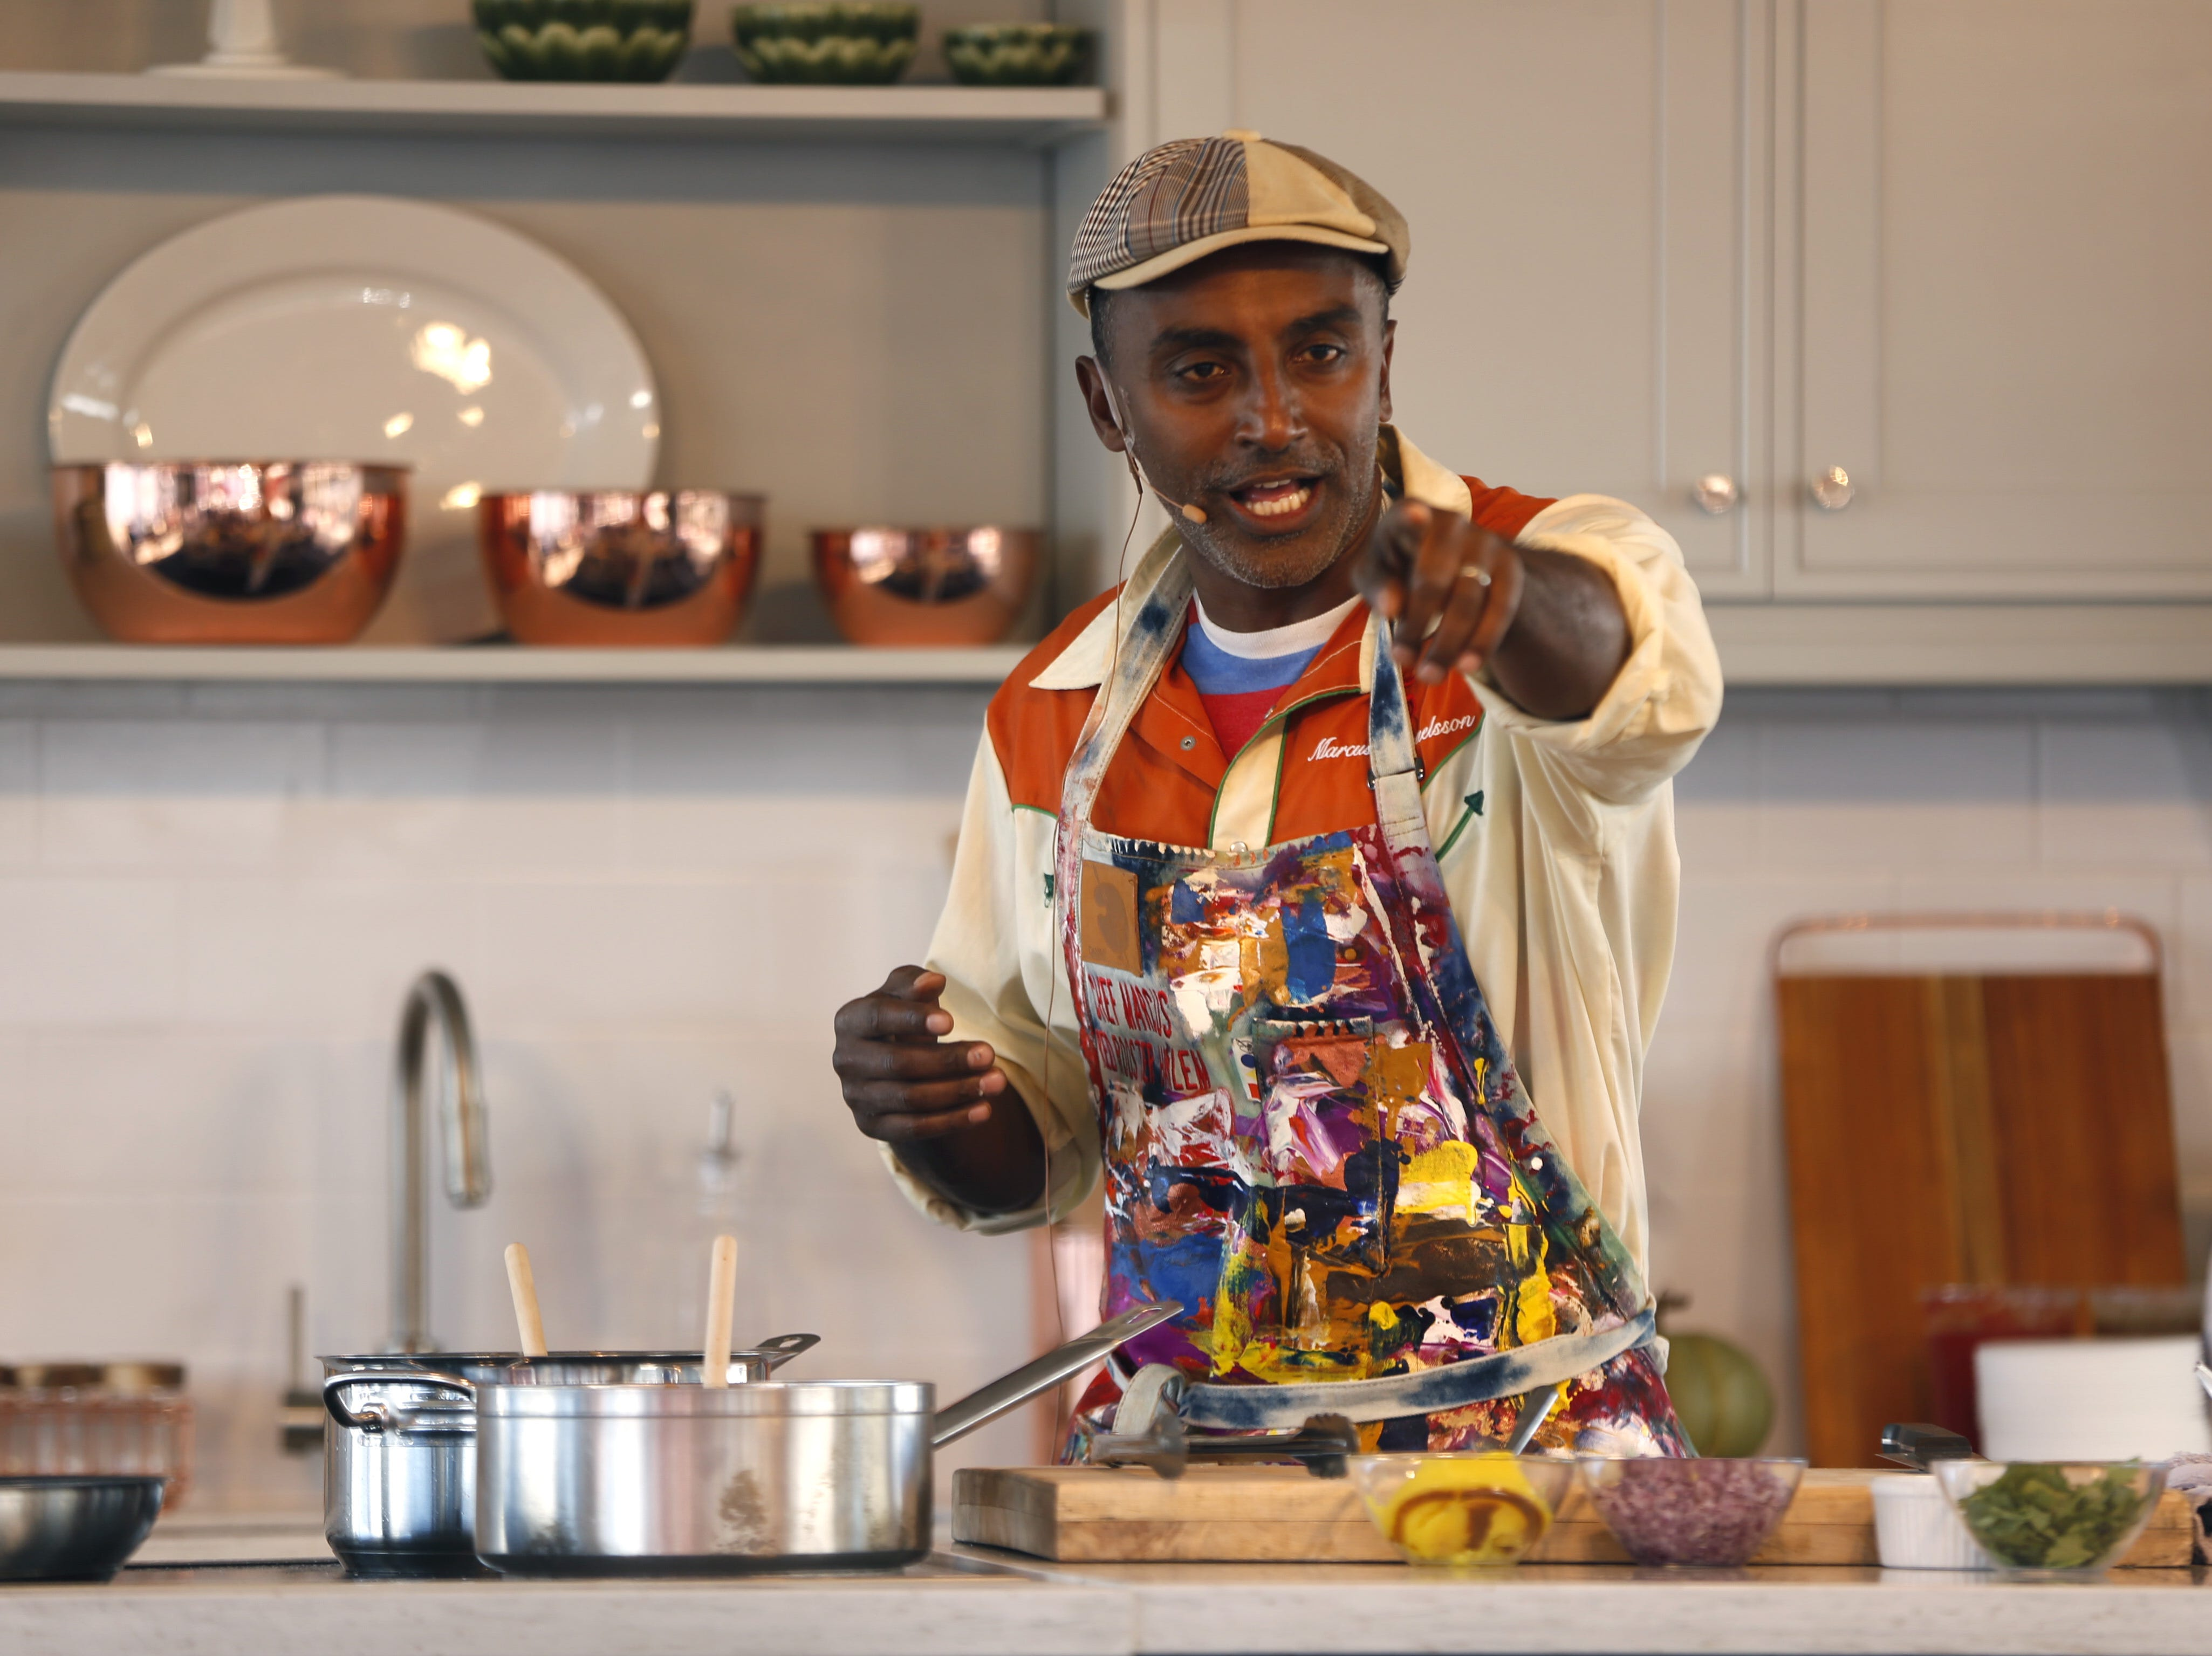 Chef Marcus Samuelsson presents a cooking demonstration during the azcentral Wine & Food Experience at WestWorld of Scottsdale, Ariz. on Saturday, Nov. 3, 2018.